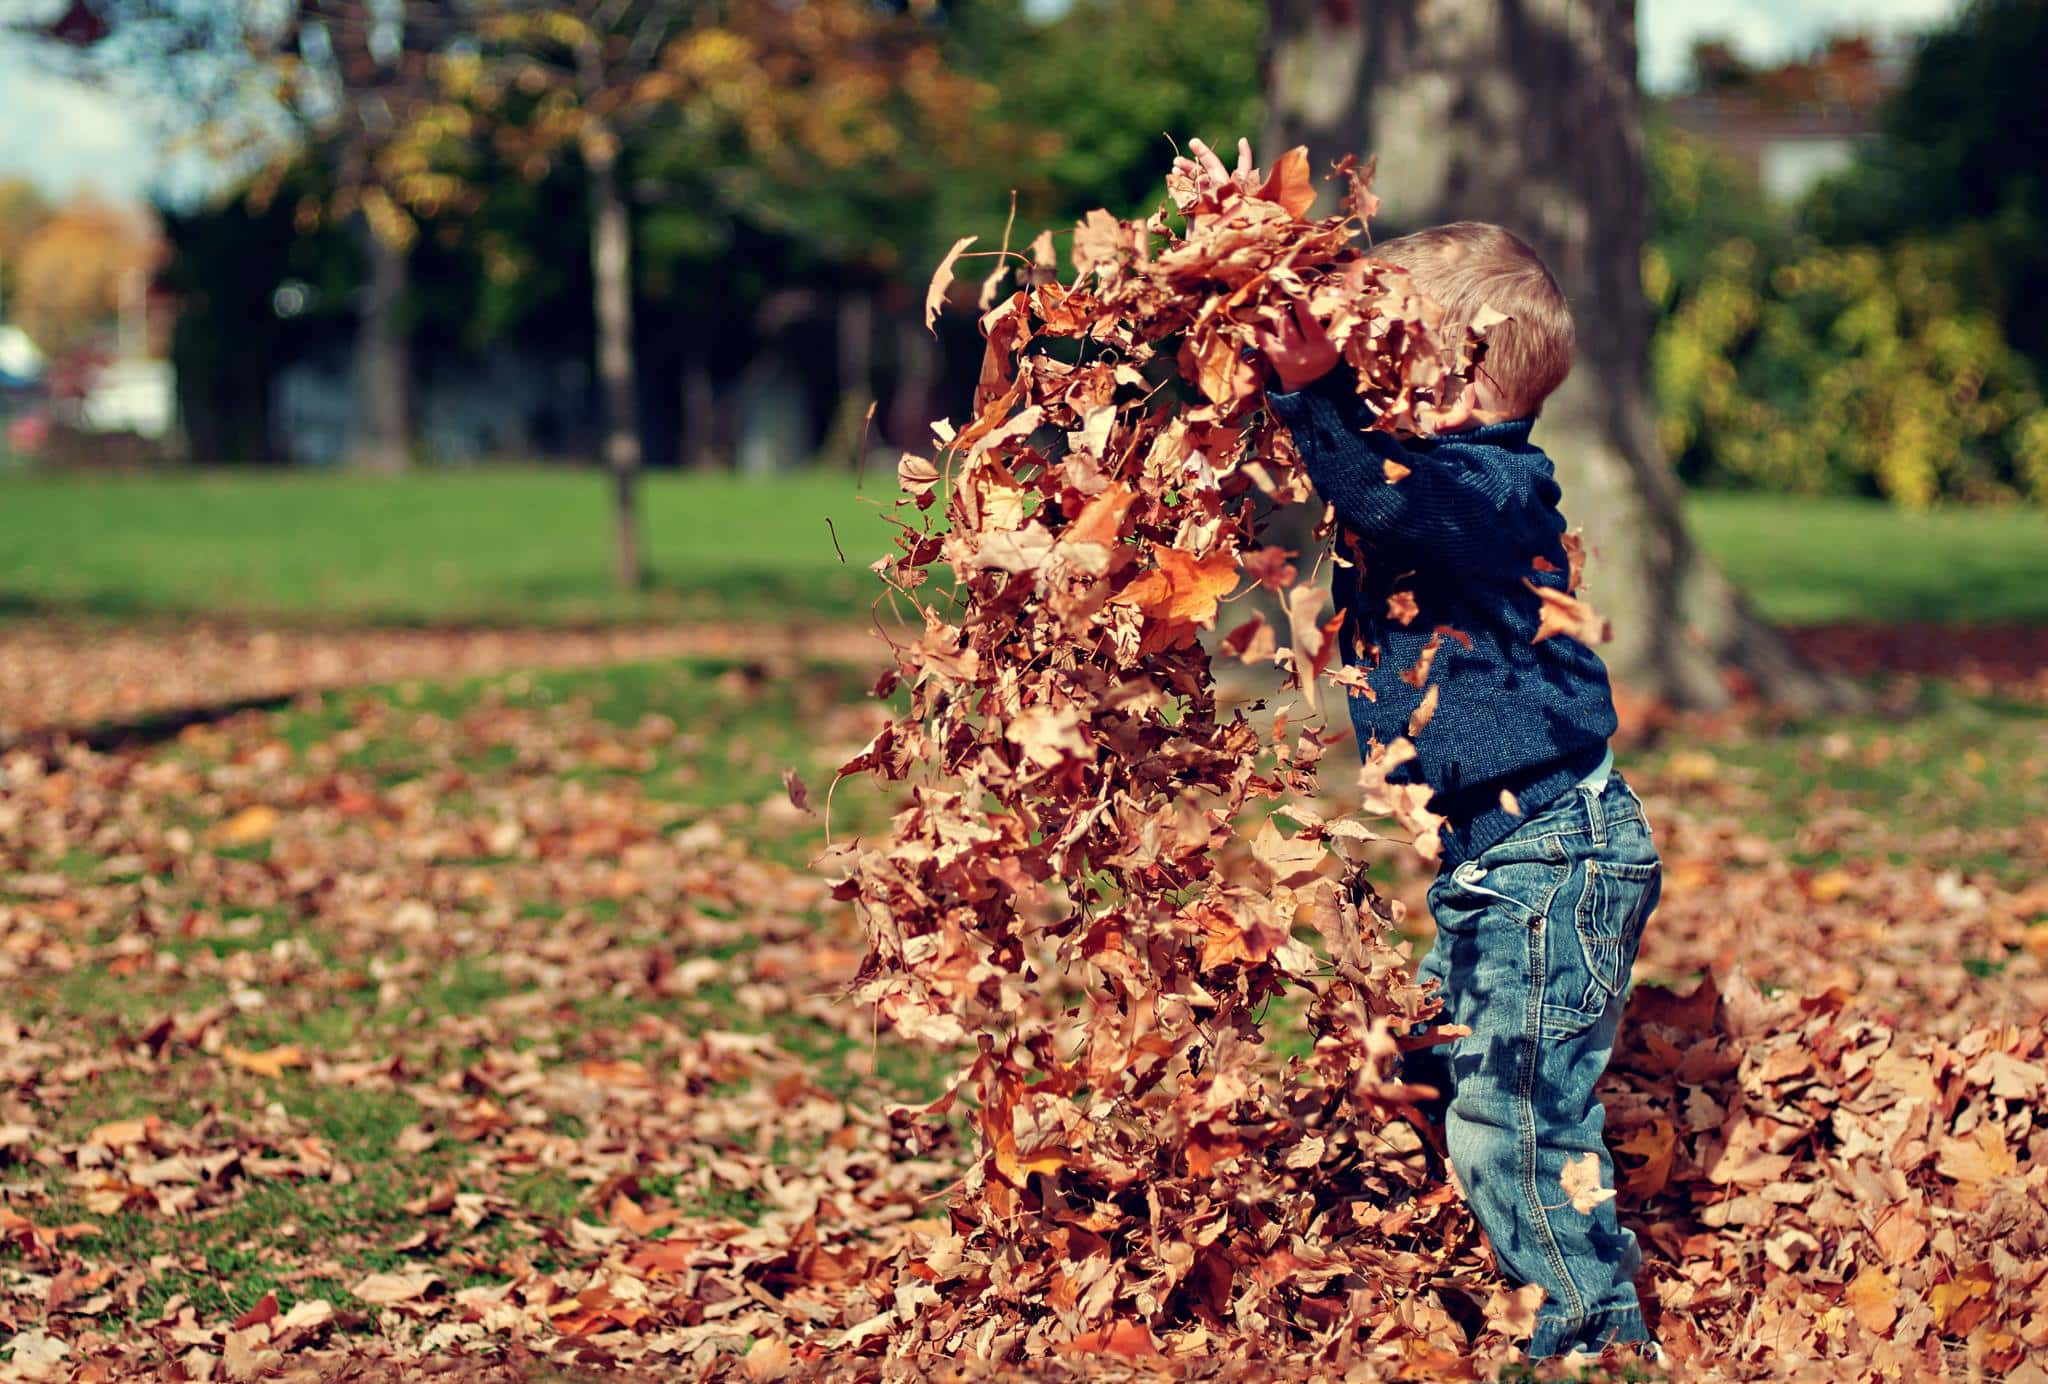 Training: Reclaiming the playful – engaging play as a professional tool